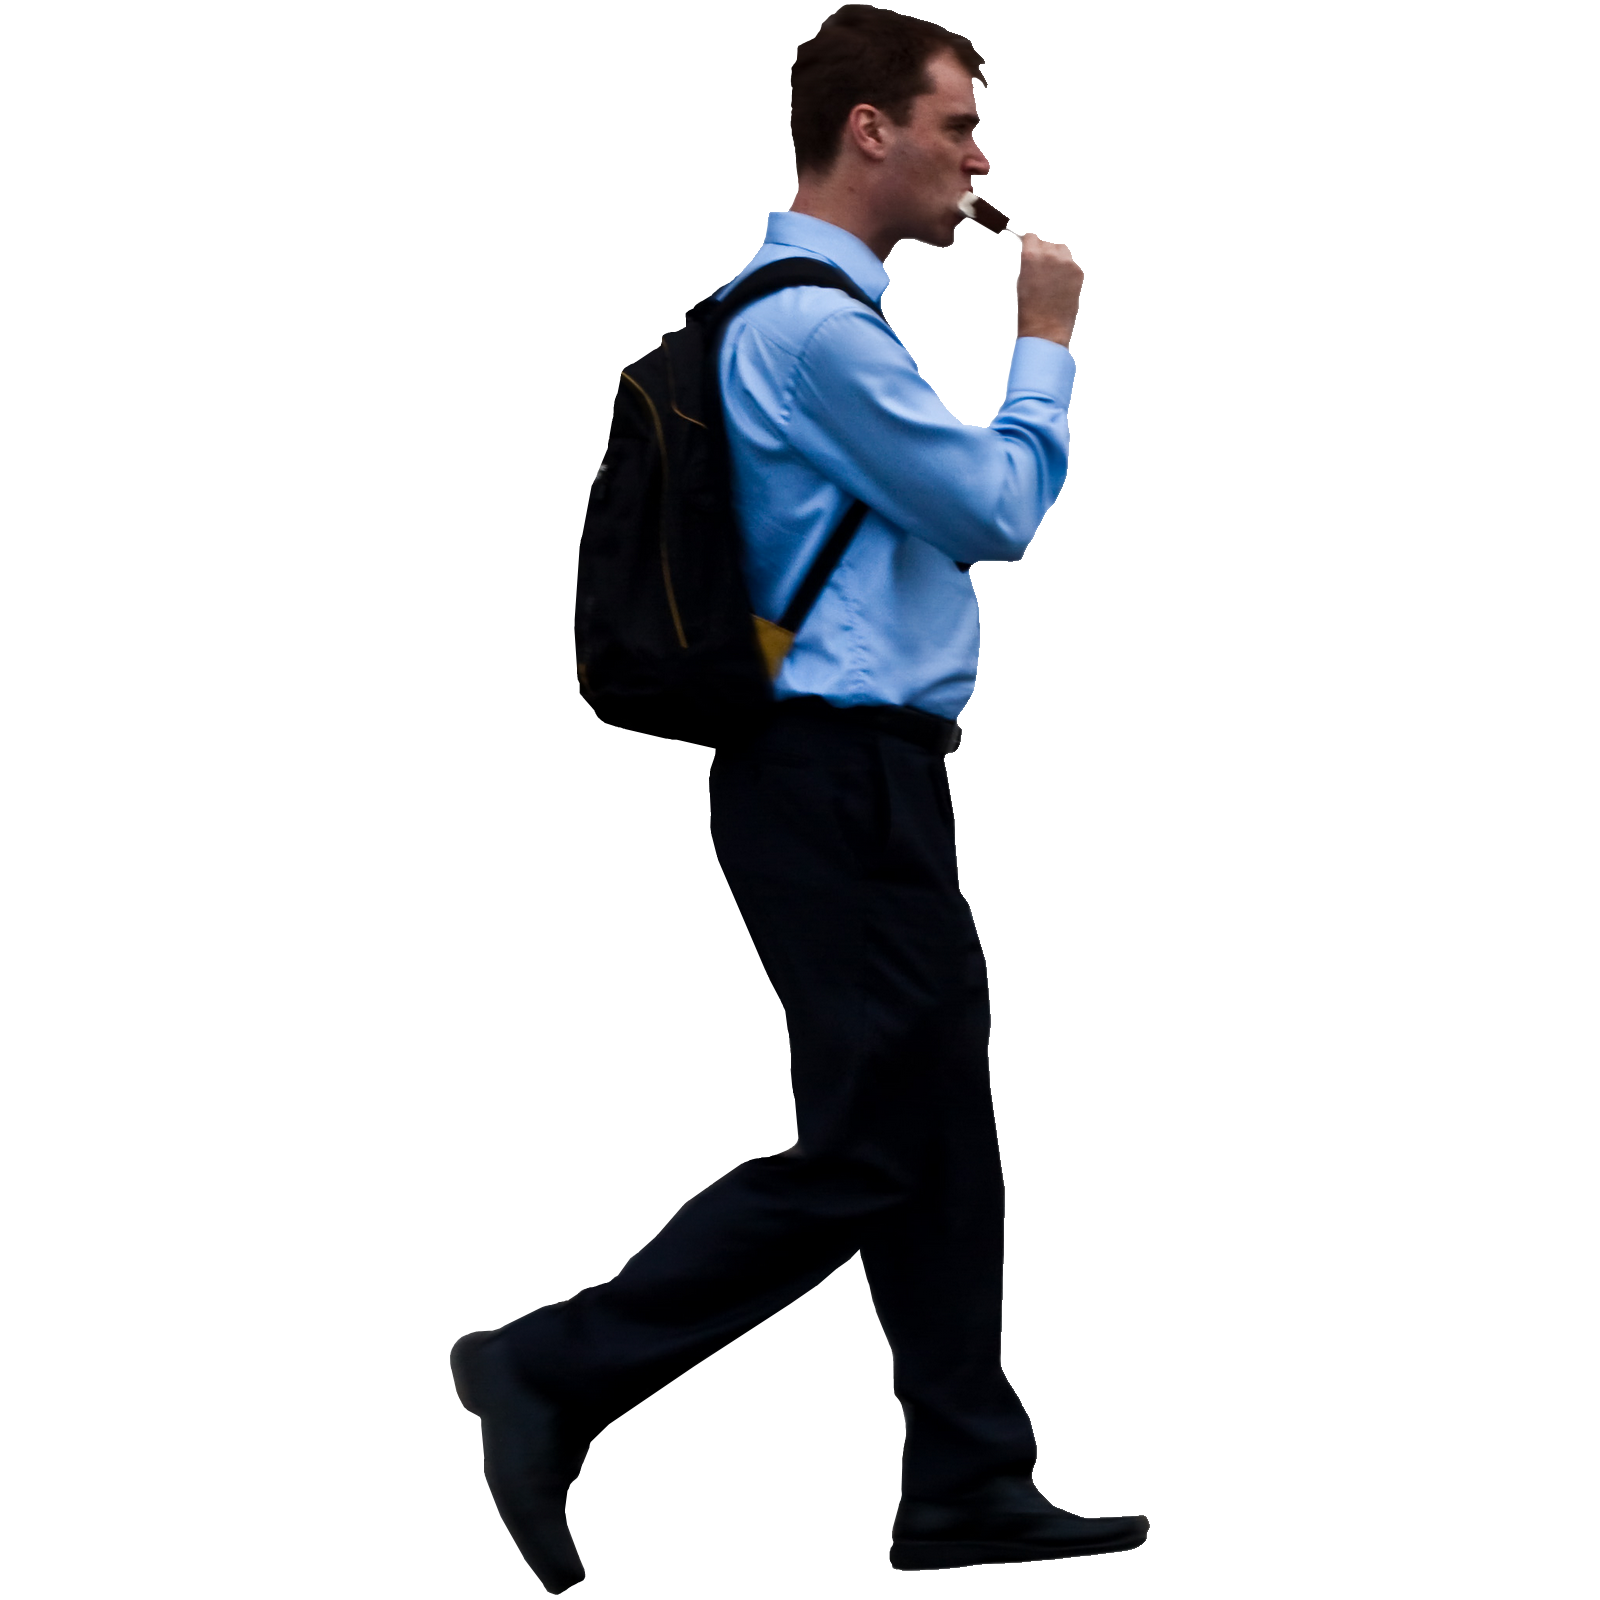 Person walking side view png. Guy with backpack and